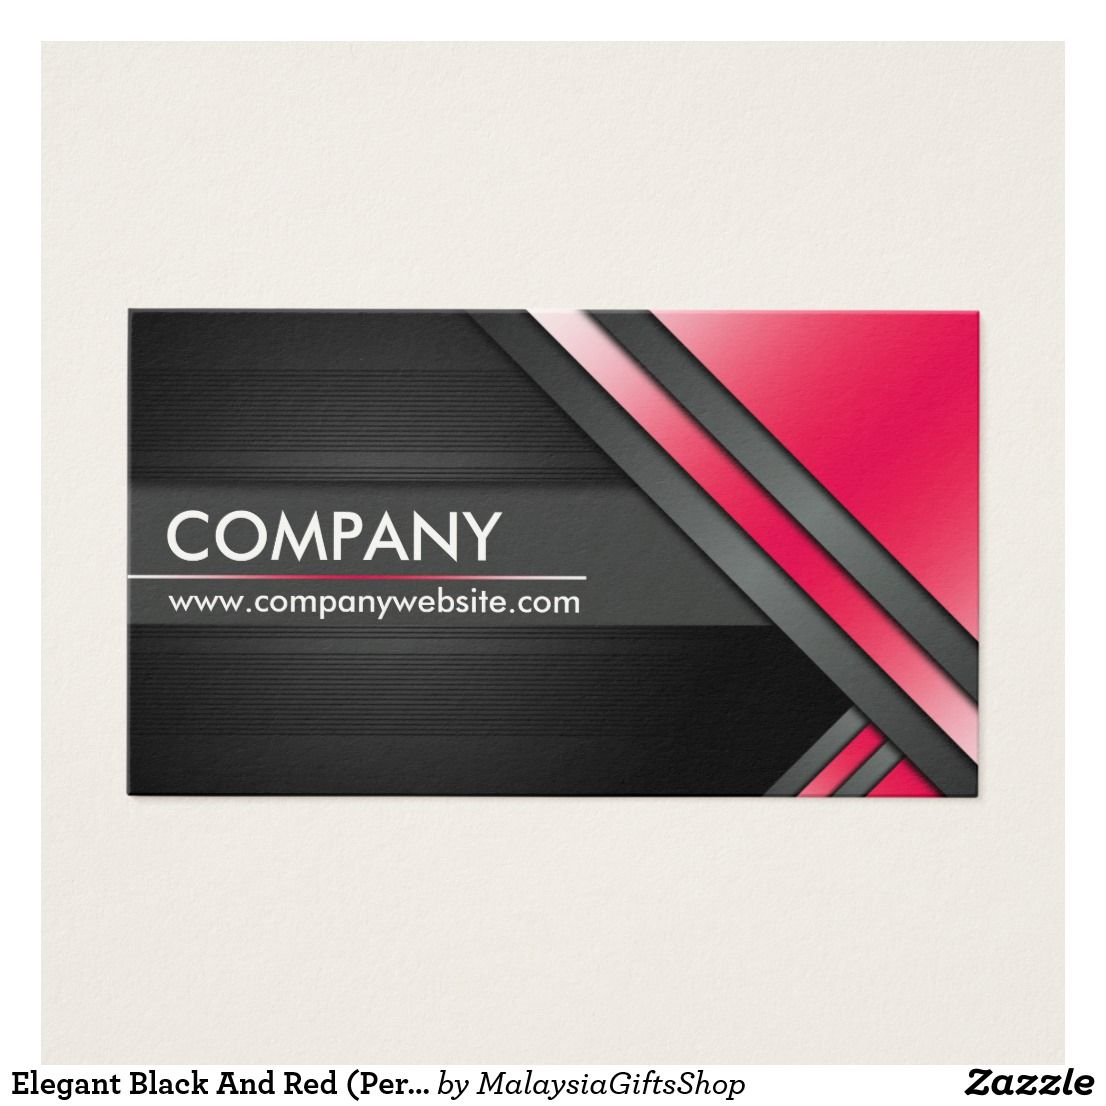 Elegant Black And Red (Personalize) Business Card | Elegant business ...